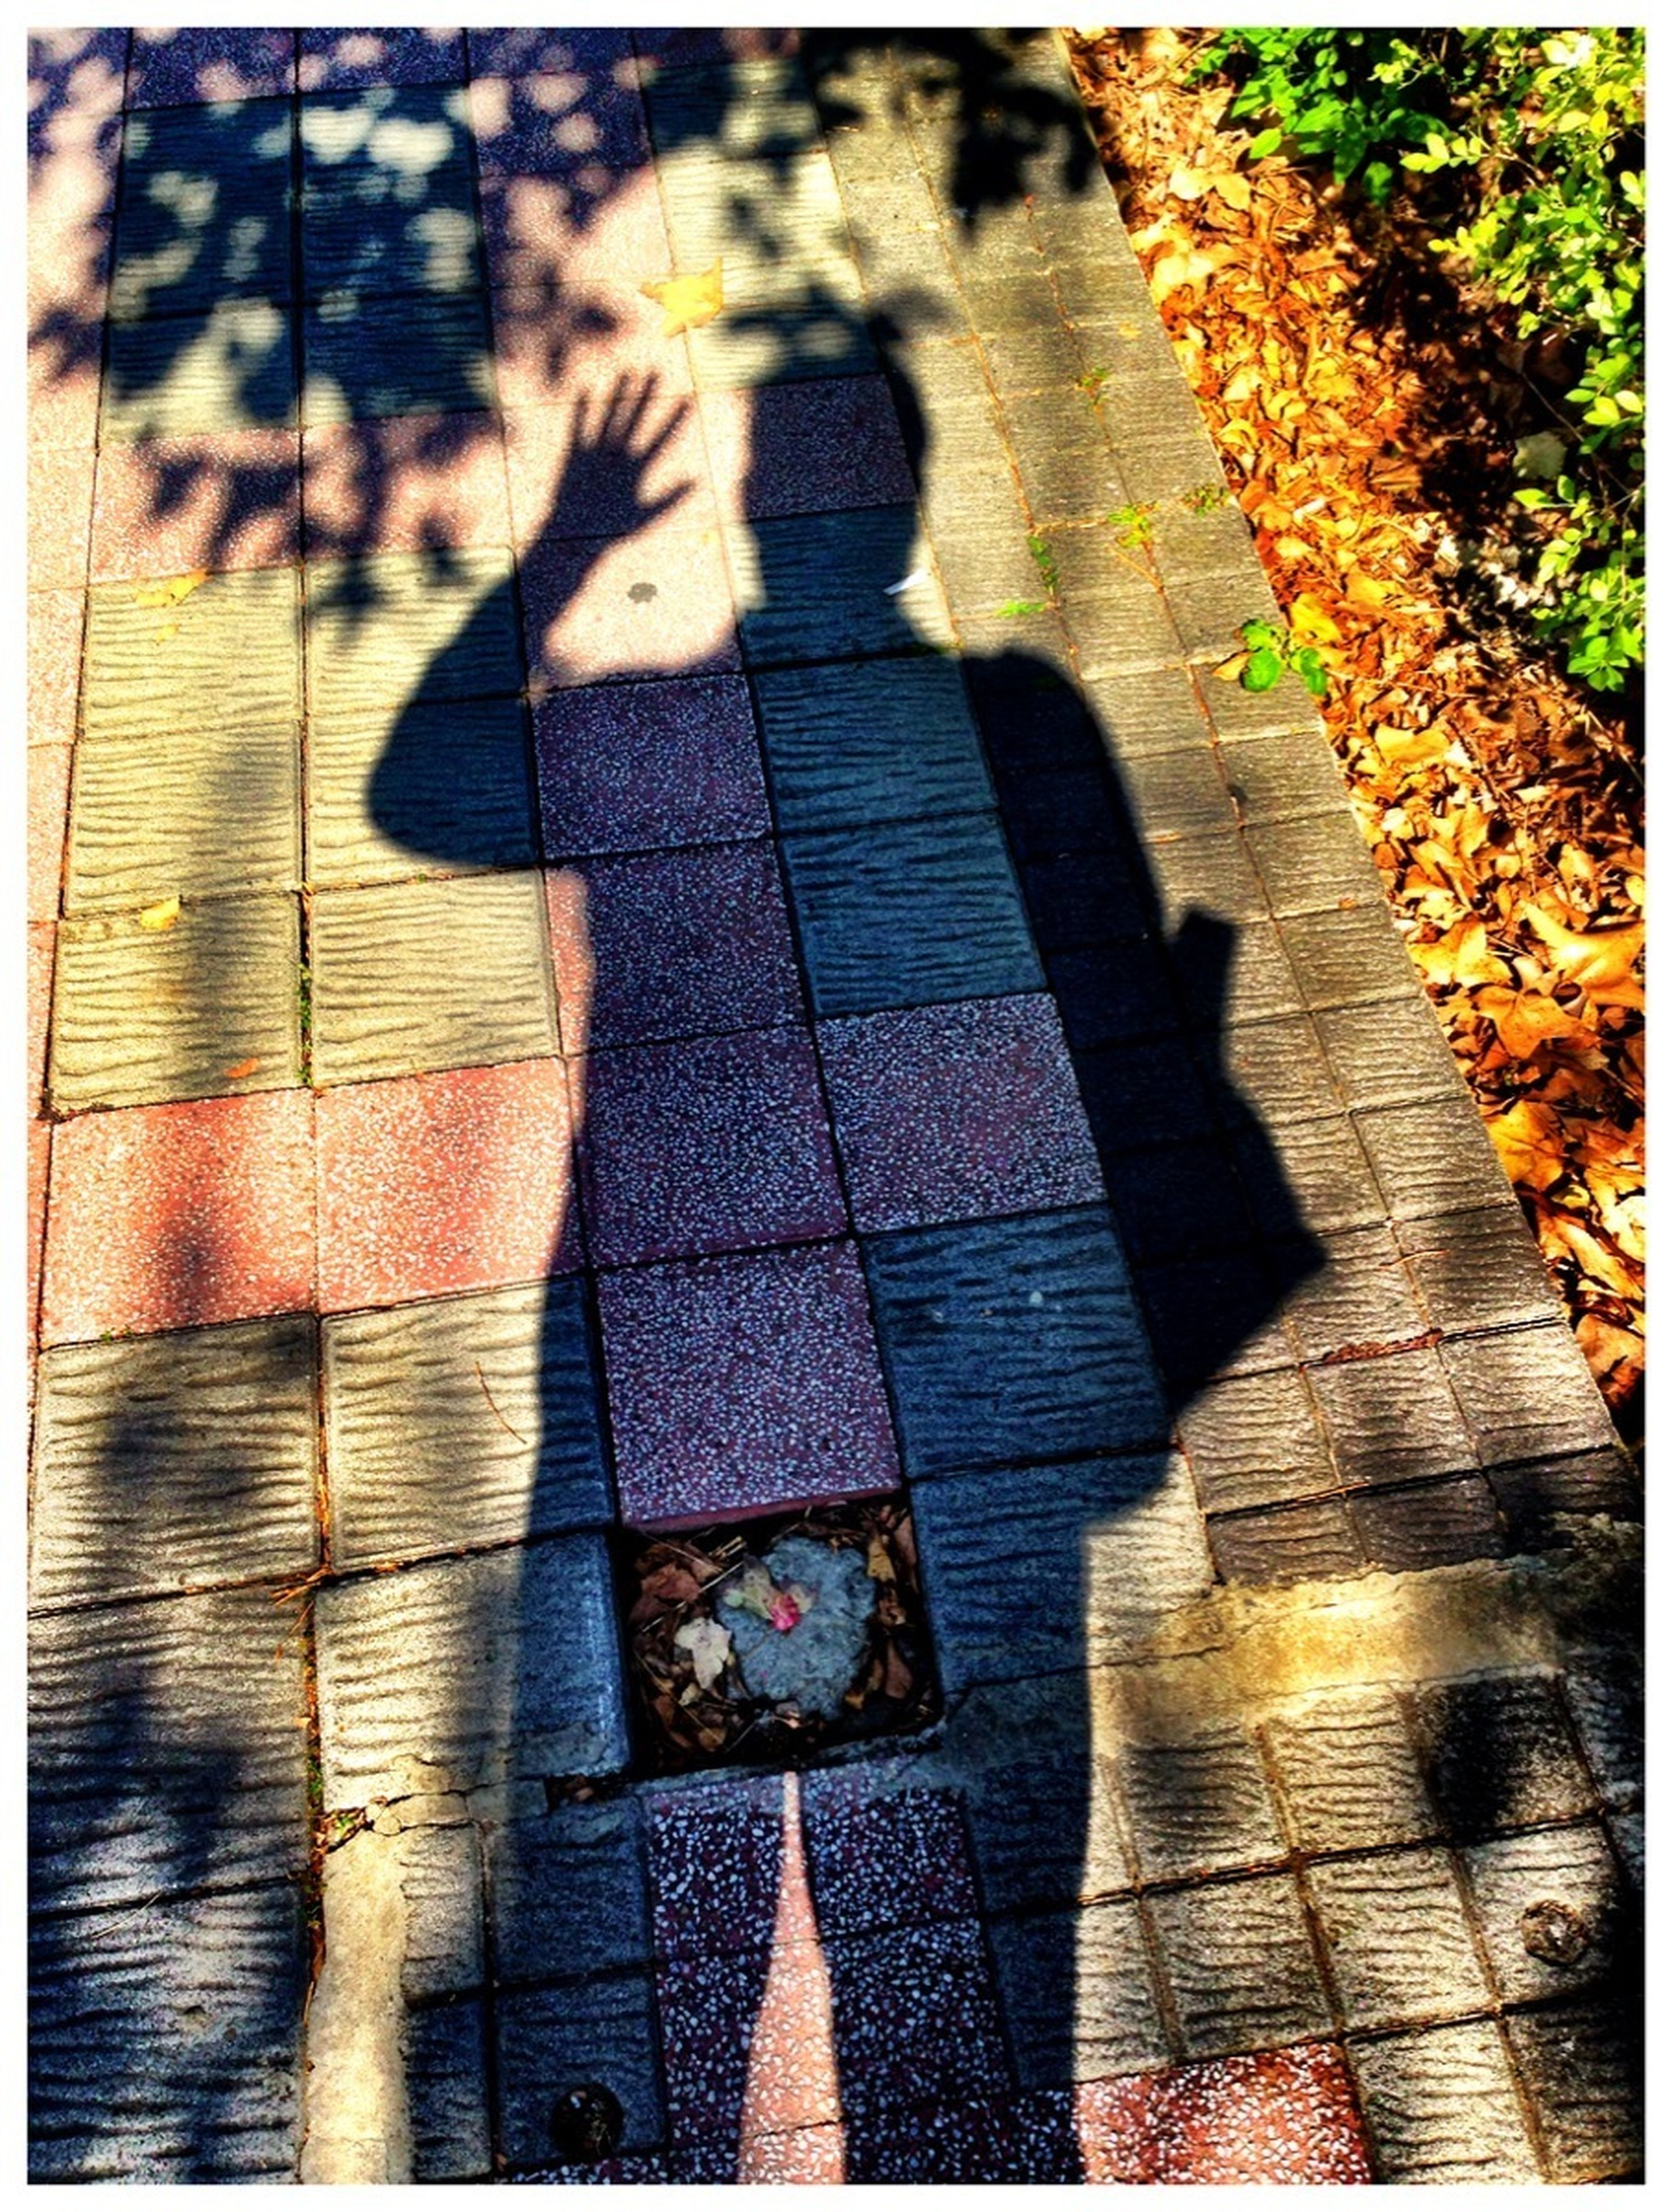 transfer print, auto post production filter, shadow, high angle view, lifestyles, sunlight, leisure activity, low section, standing, sidewalk, steps, day, street, outdoors, wood - material, focus on shadow, footpath, walking